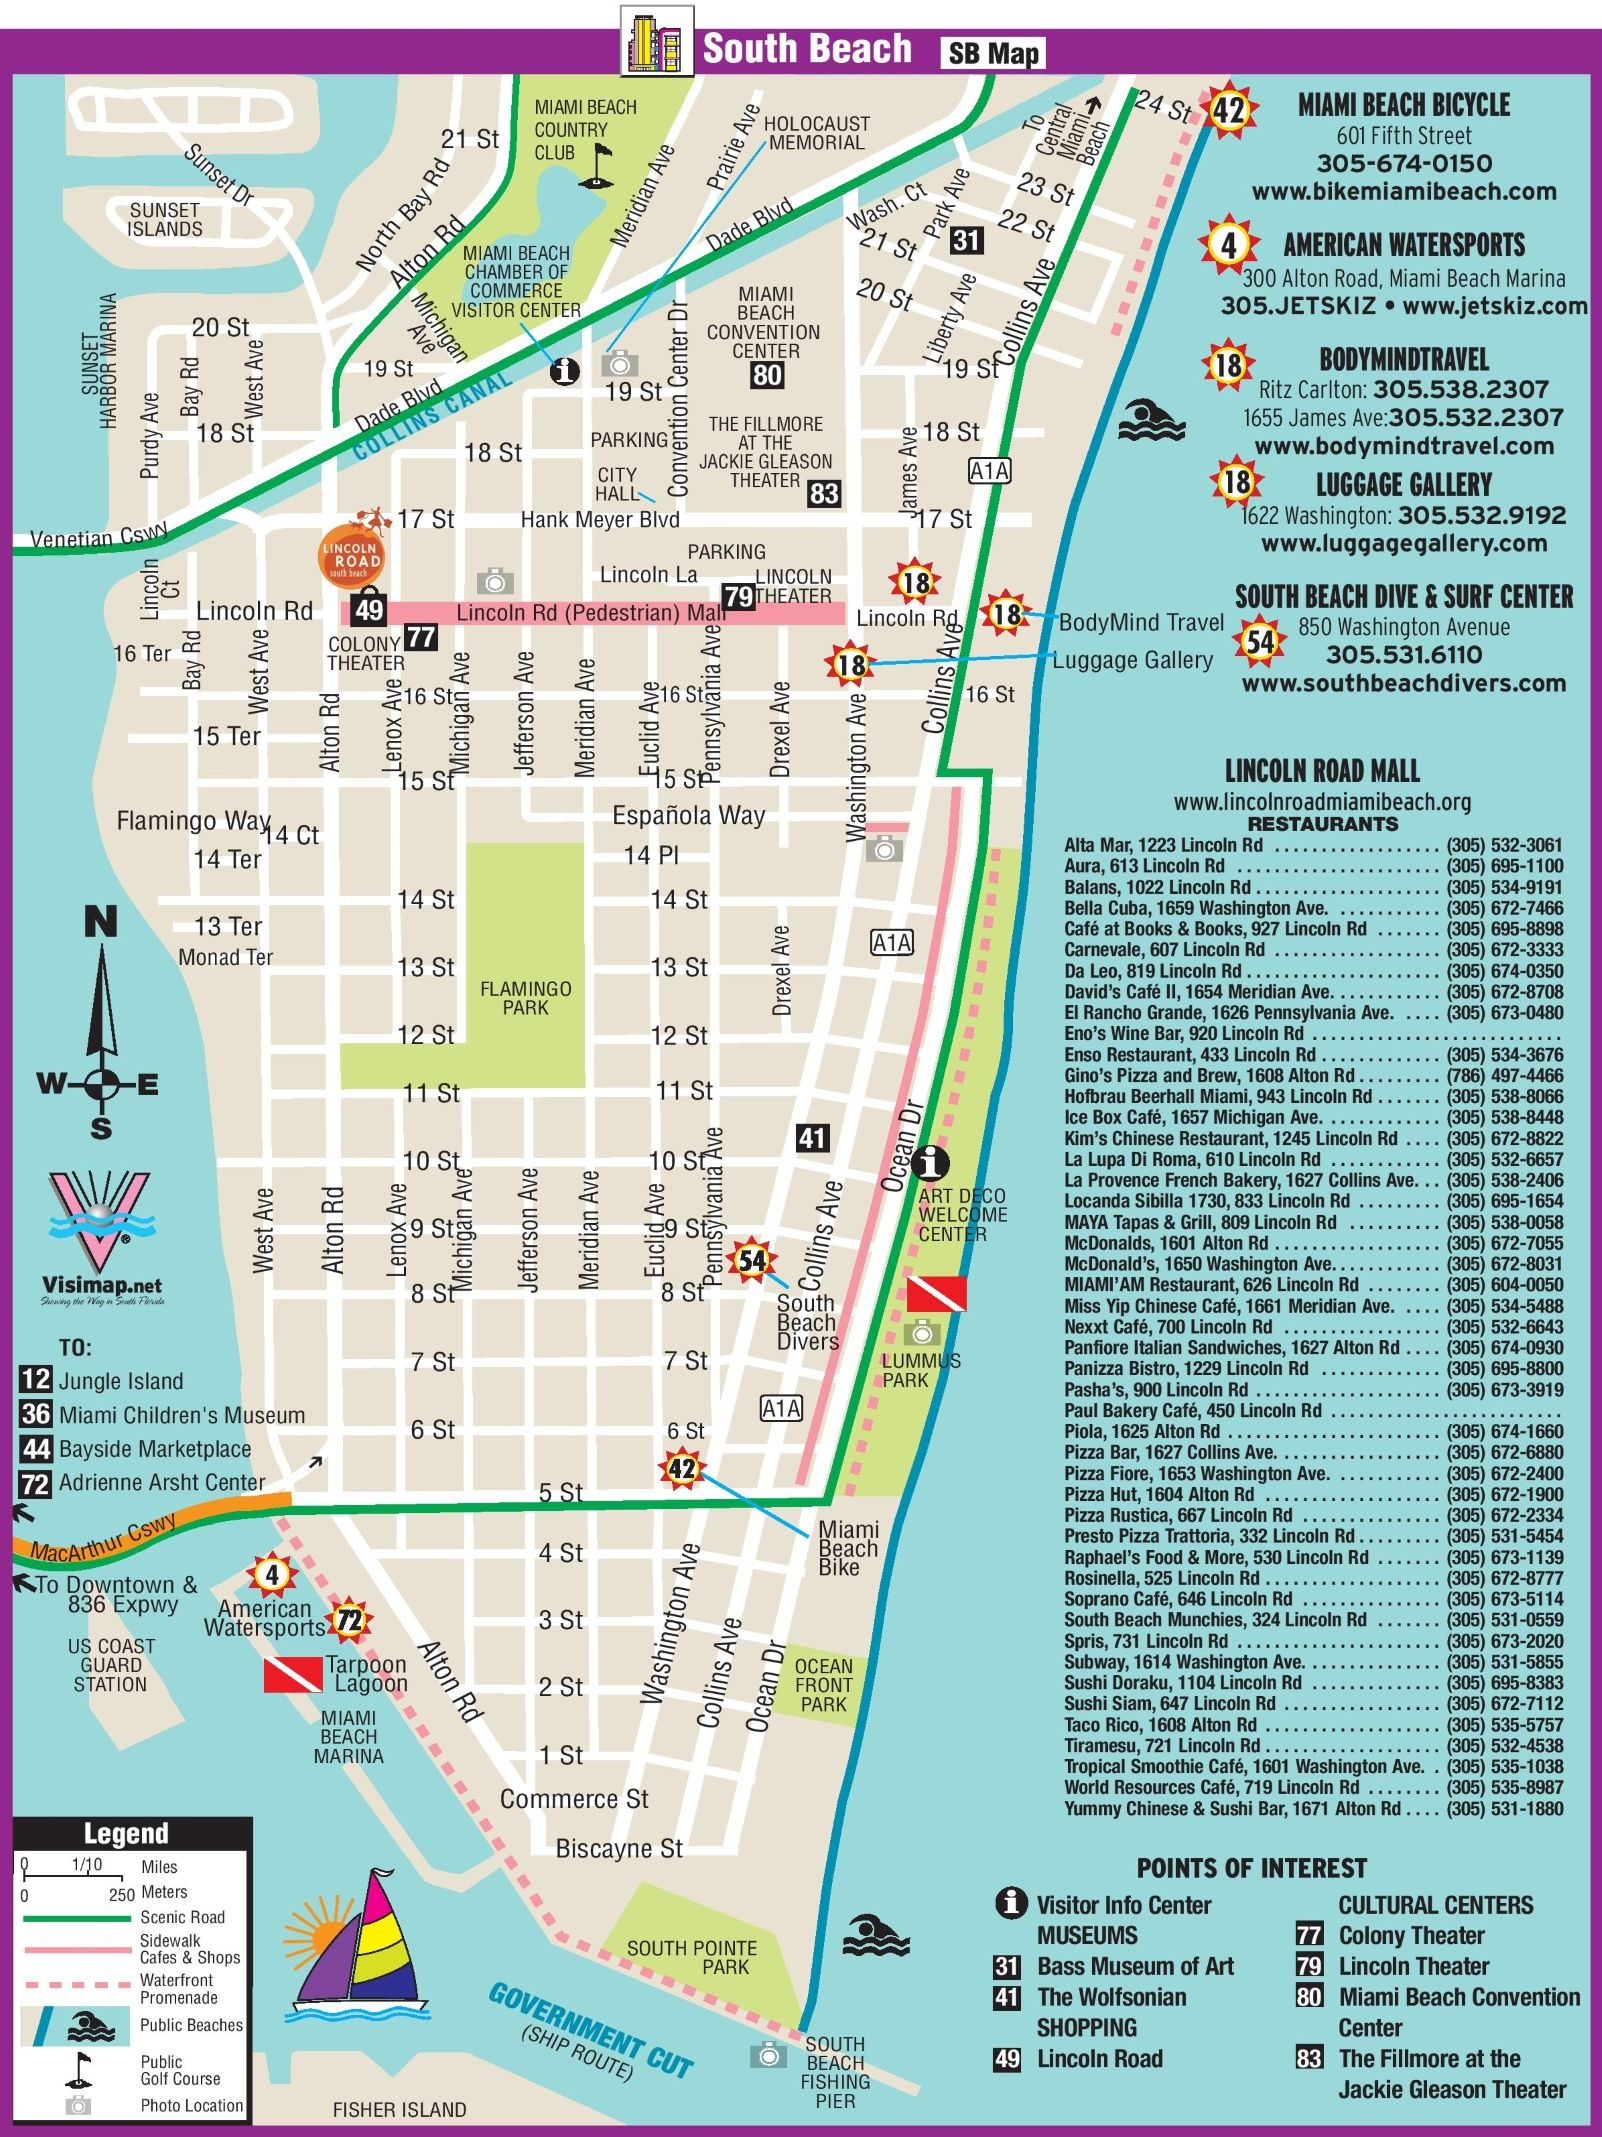 South Beach Miami Map South Beach restaurant and sightseeing map | Miami in 2019 | South